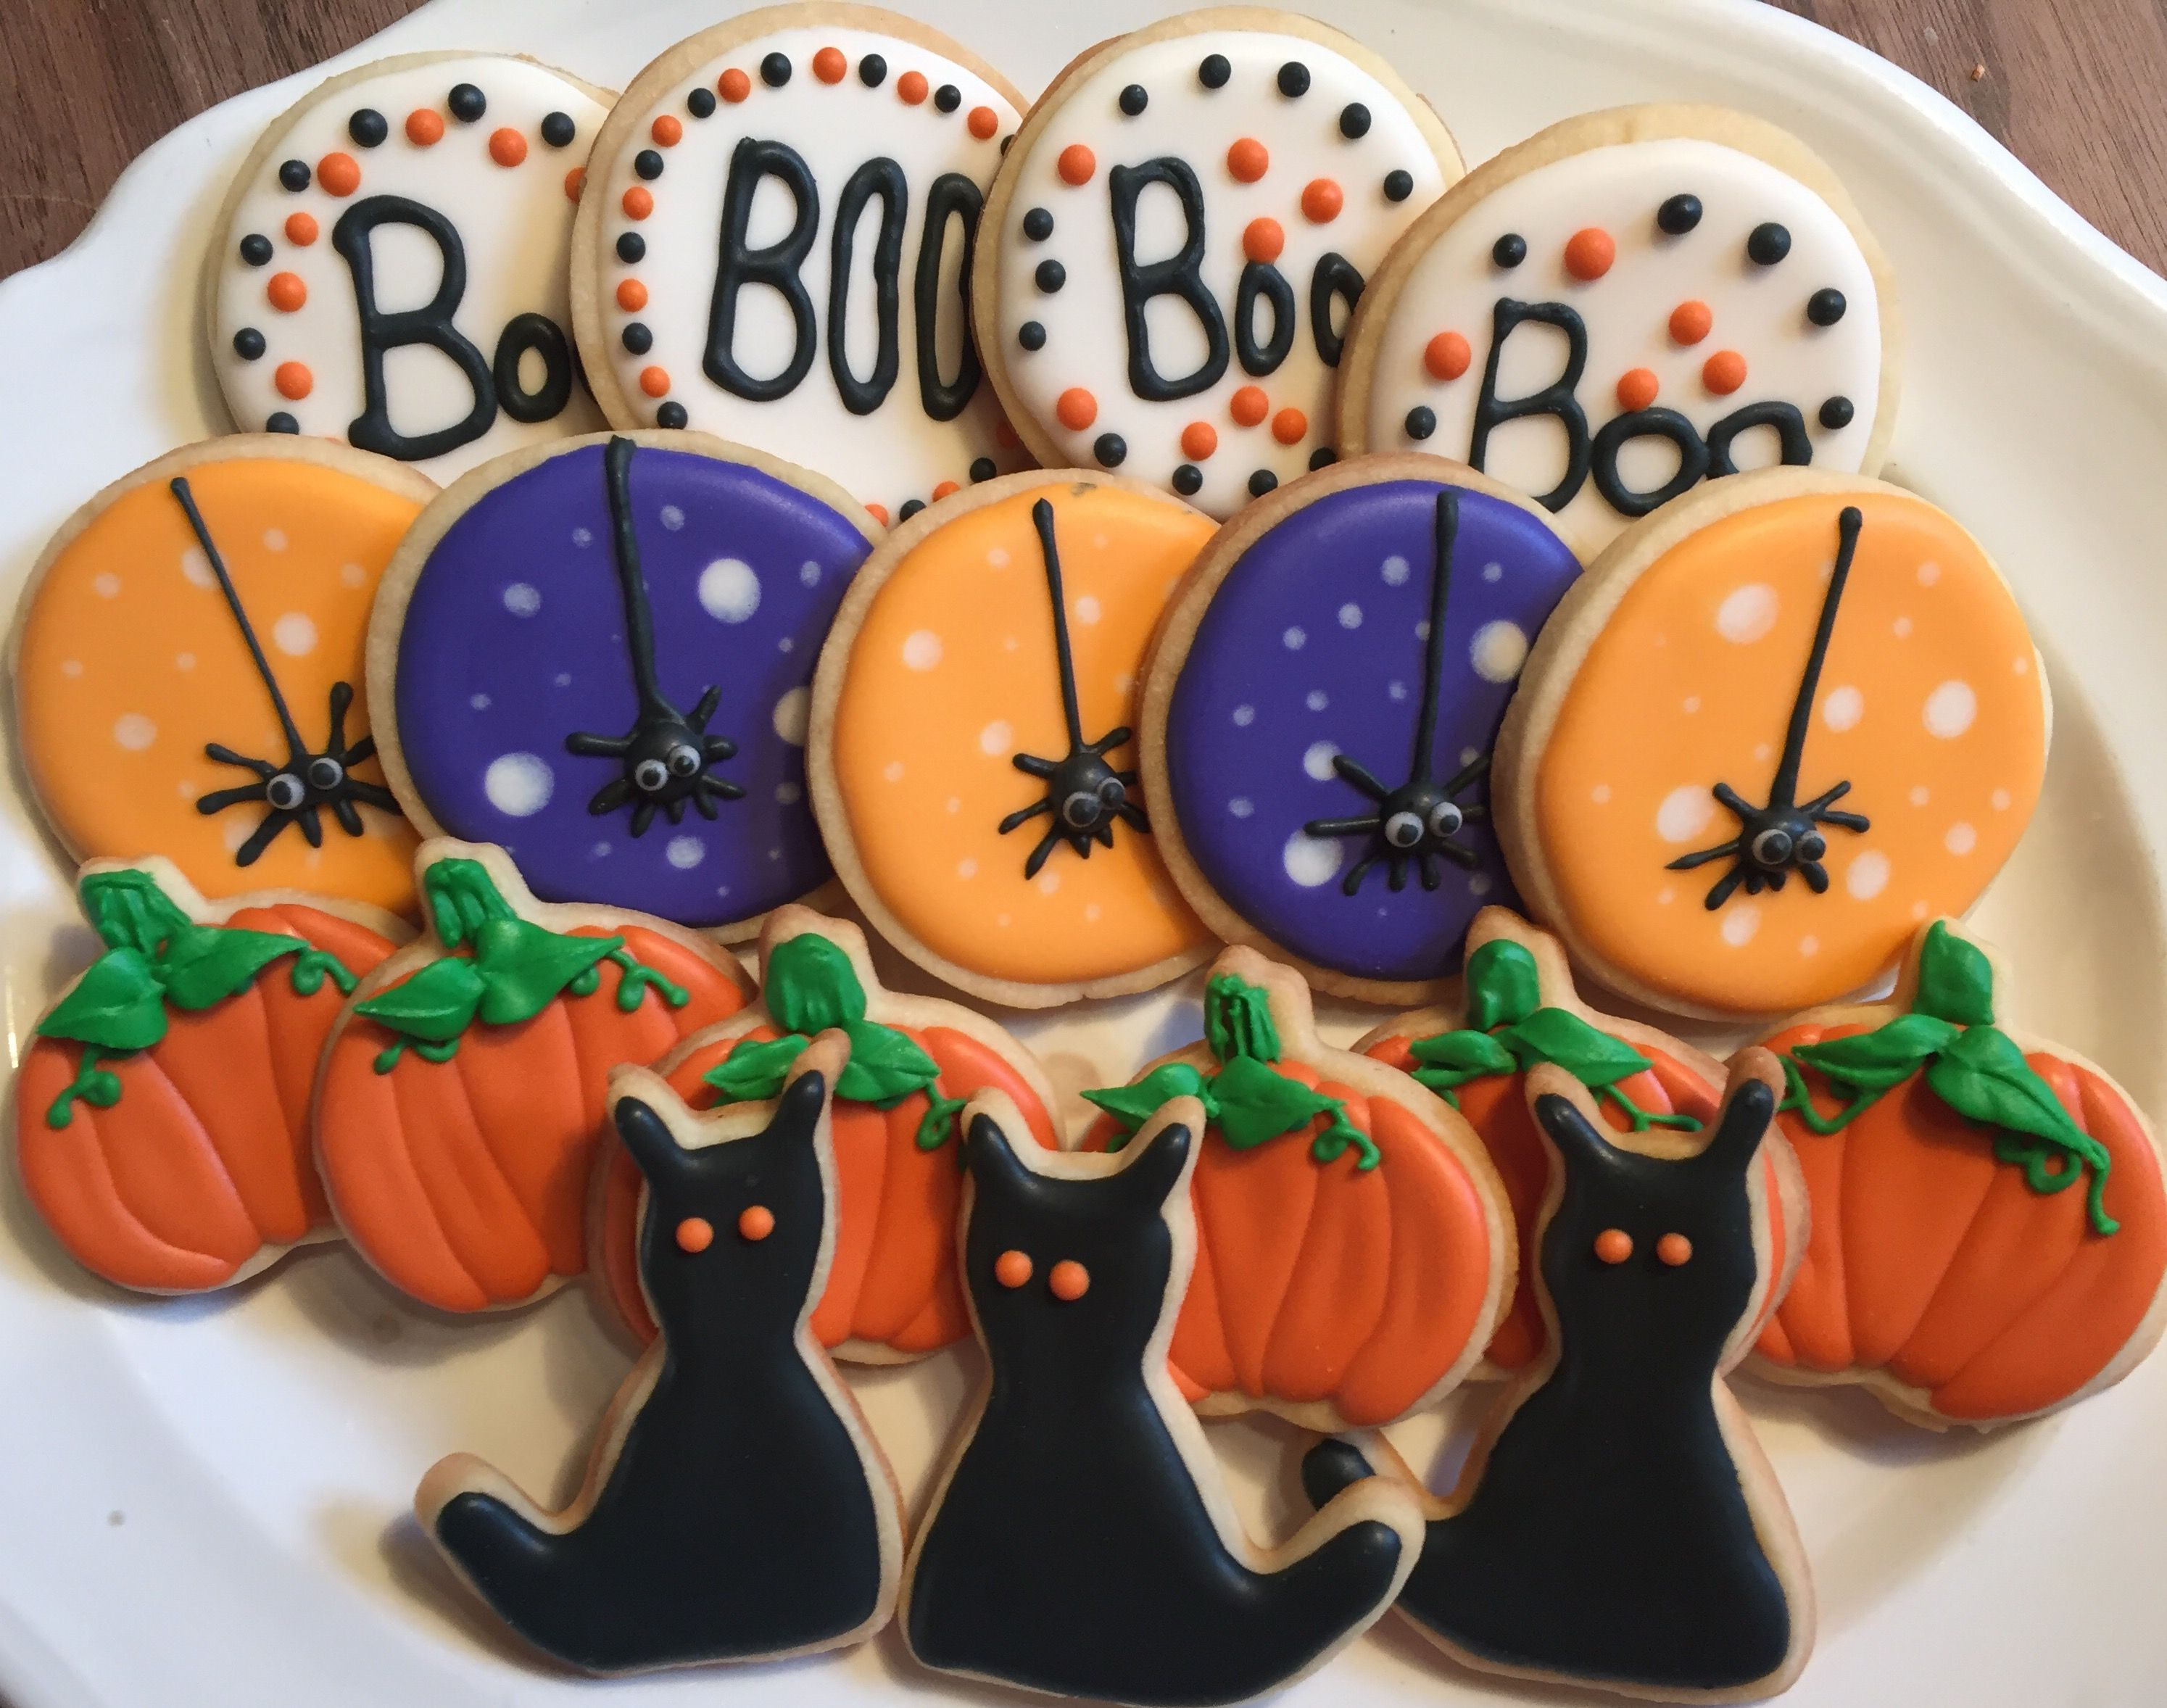 Pin by Karin Gester on Halloween Pinterest Sugar cookies - Halloween Decorated Cookies